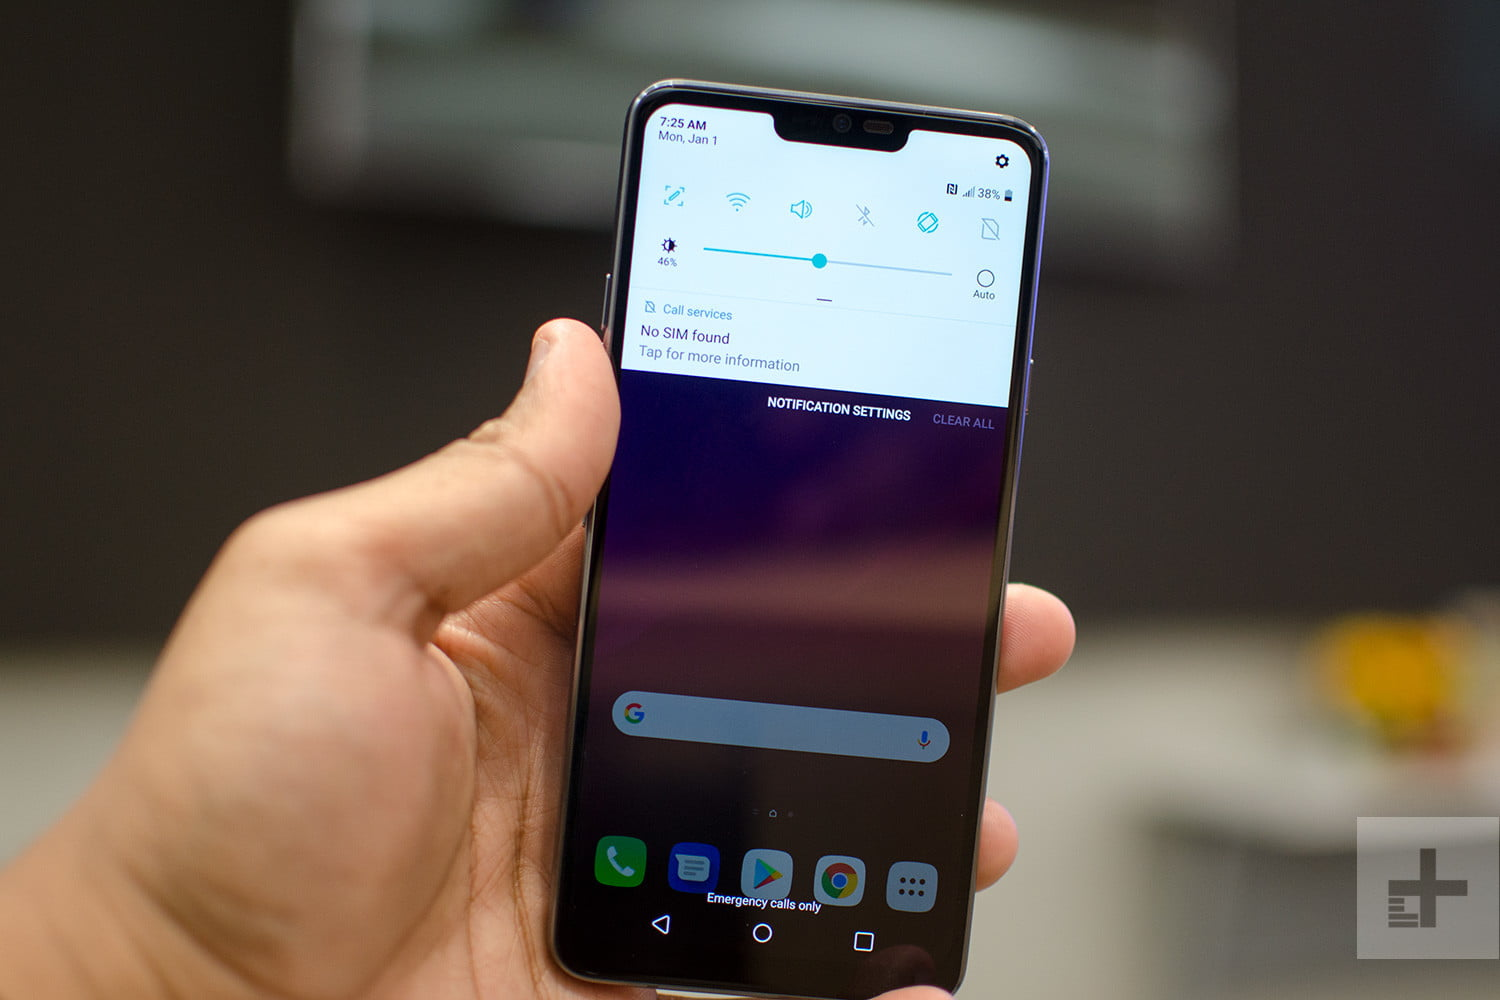 Take Control of Your LG G7 ThinQ with These Helpful Tips and